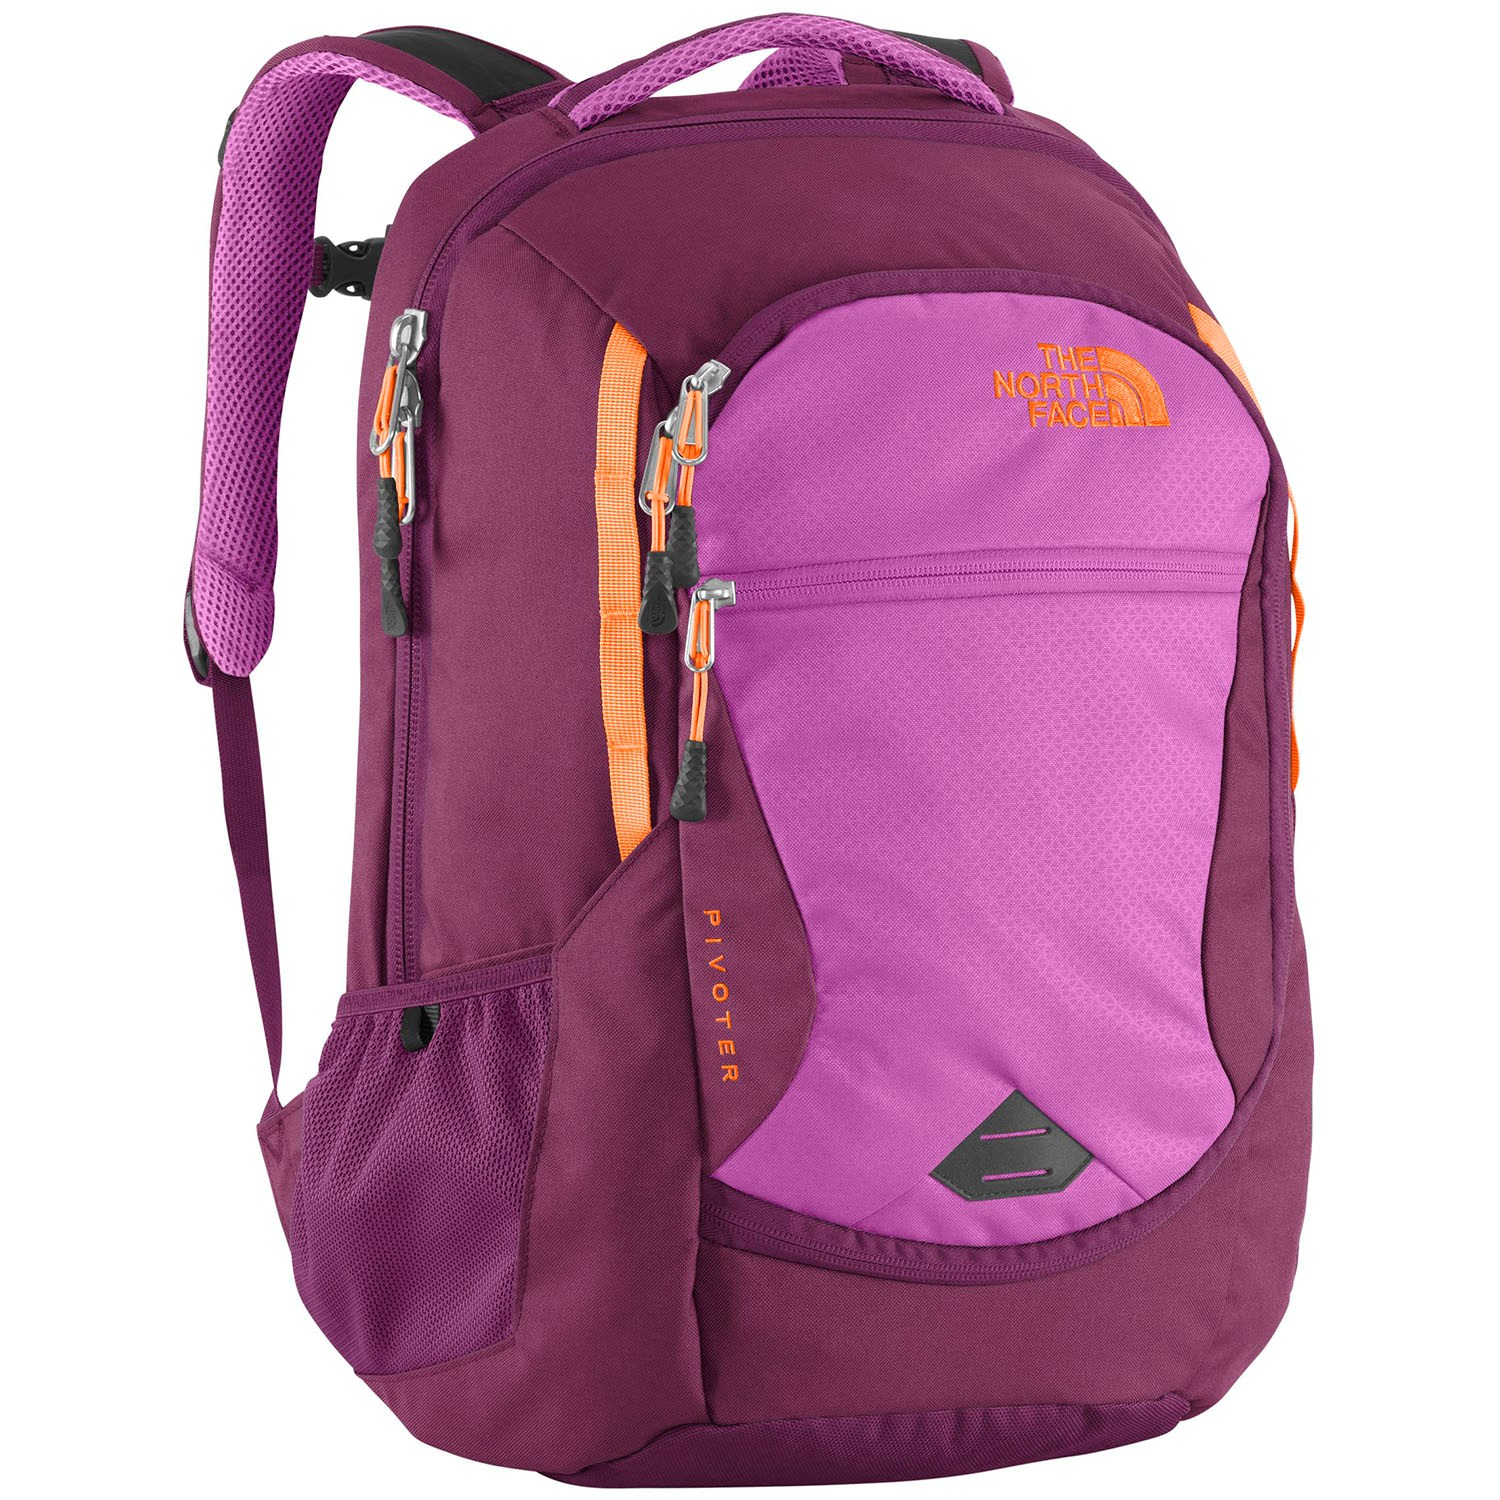 75bf9eeee7 The North Face Pivoter Backpack - Women s